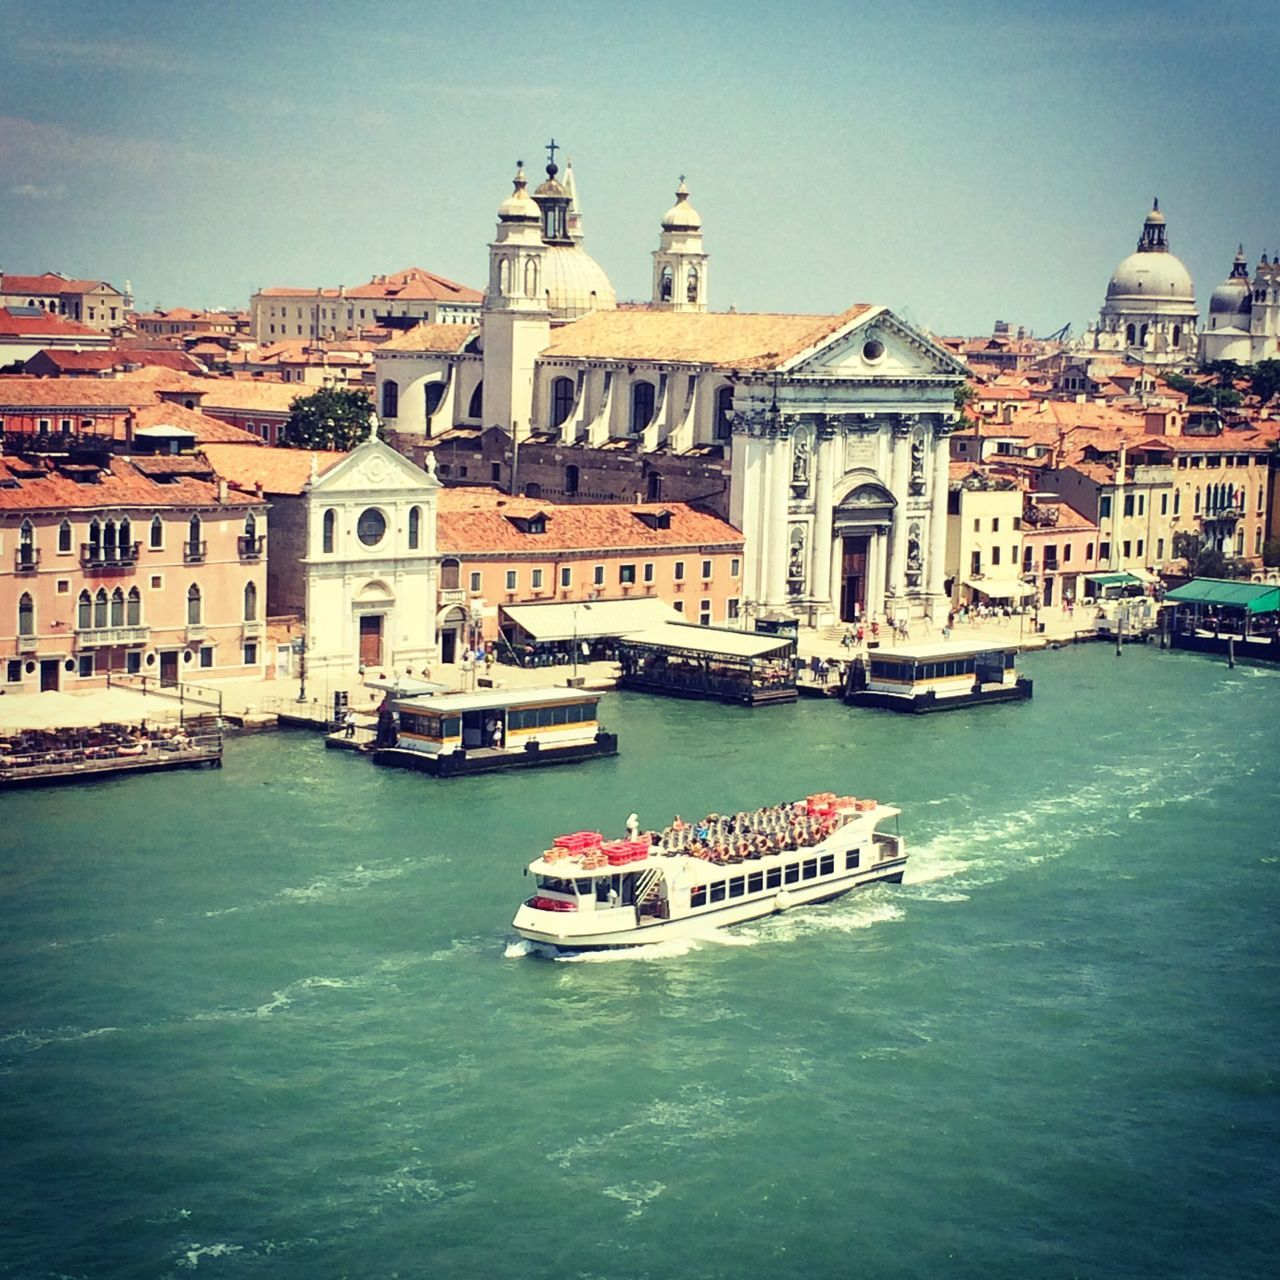 architecture, religion, place of worship, building exterior, nautical vessel, dome, built structure, spirituality, transportation, water, travel destinations, mode of transport, travel, waterfront, outdoors, day, clear sky, city, no people, gondola - traditional boat, sky